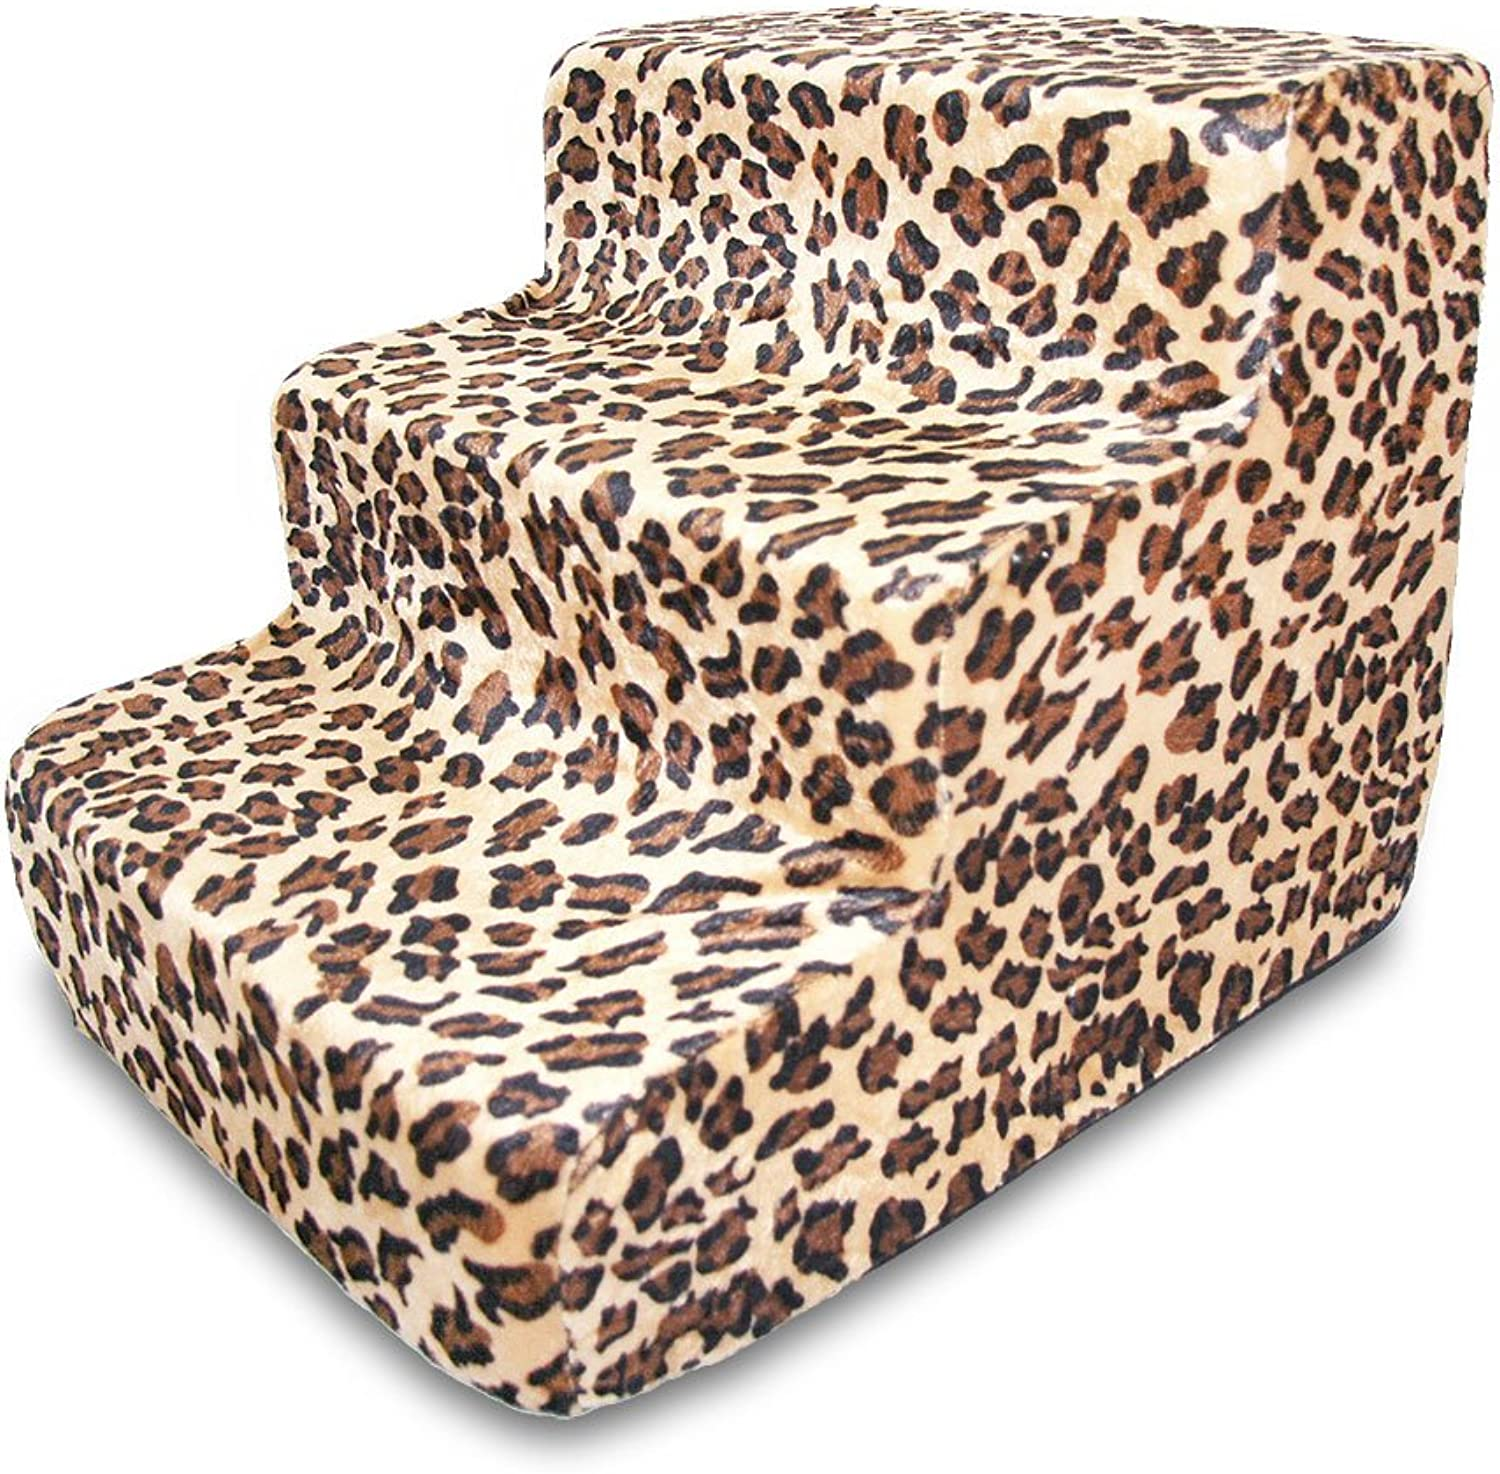 Best Pet Supplies 3Step Foam Pet Stairs Steps, 18 by 15 by 13Inch, Animal Print